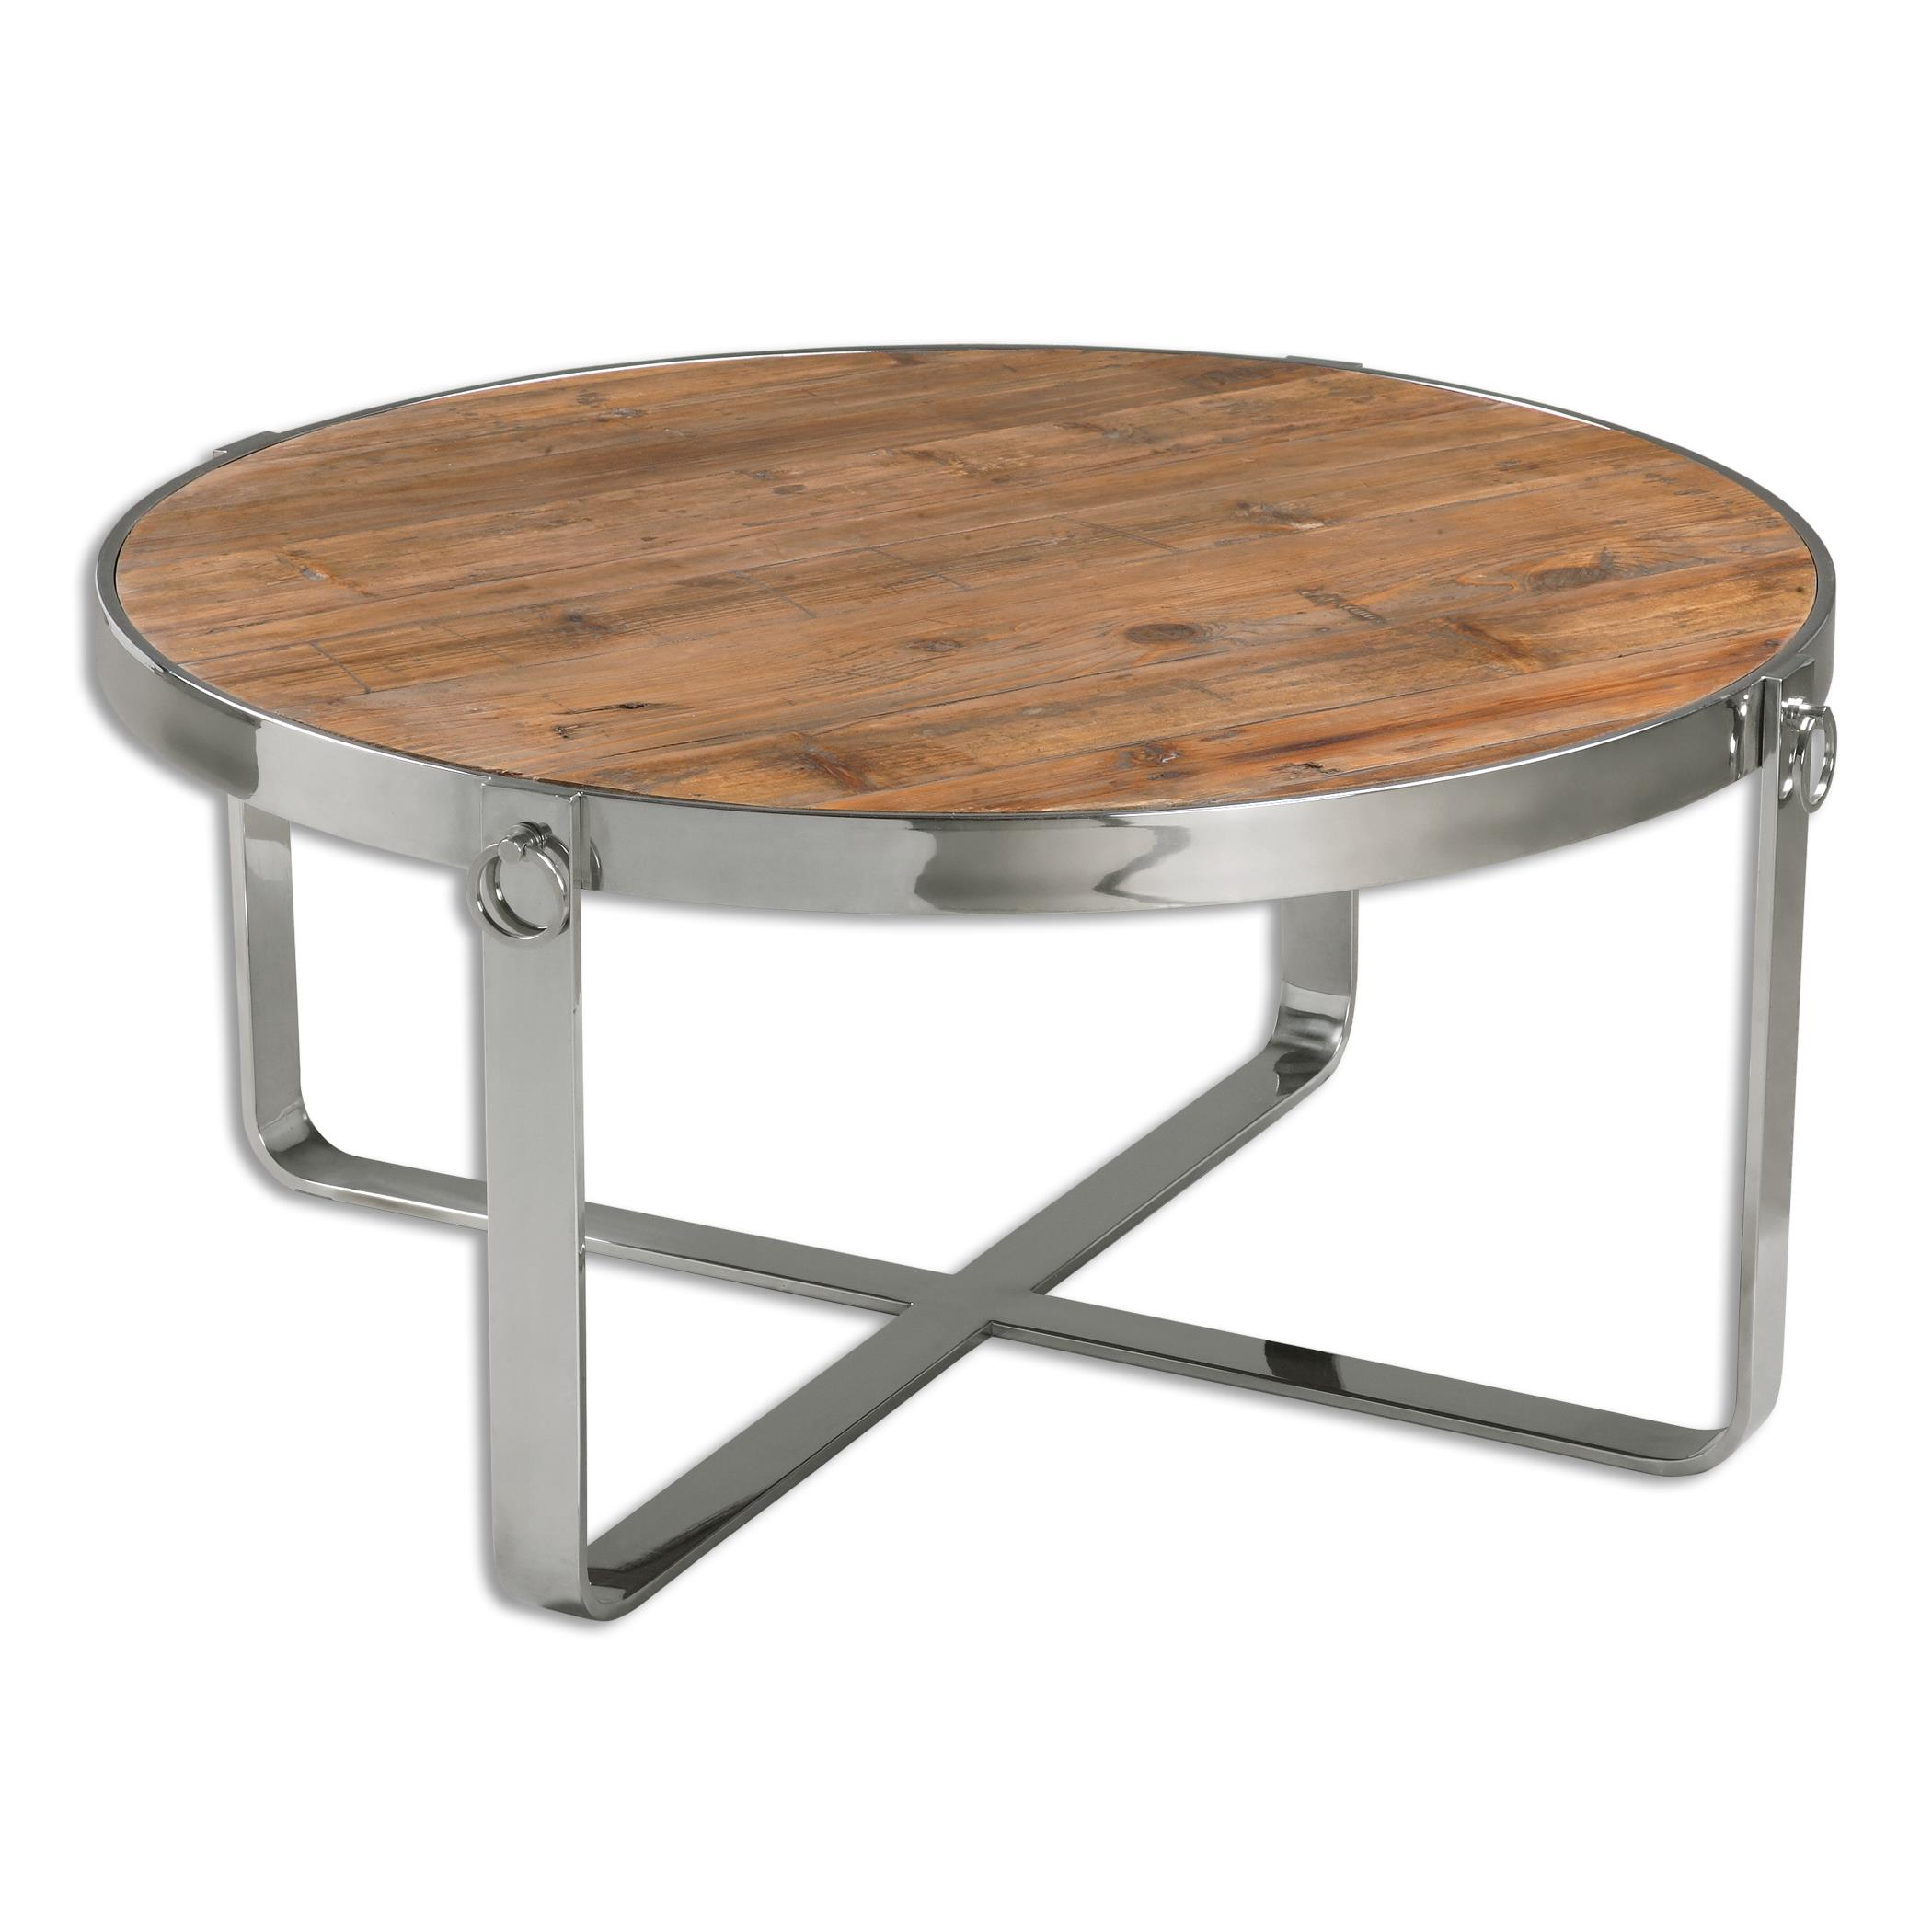 Uttermost Accent Furniture Berdine Wooden Coffee Table - Item Number: 24485